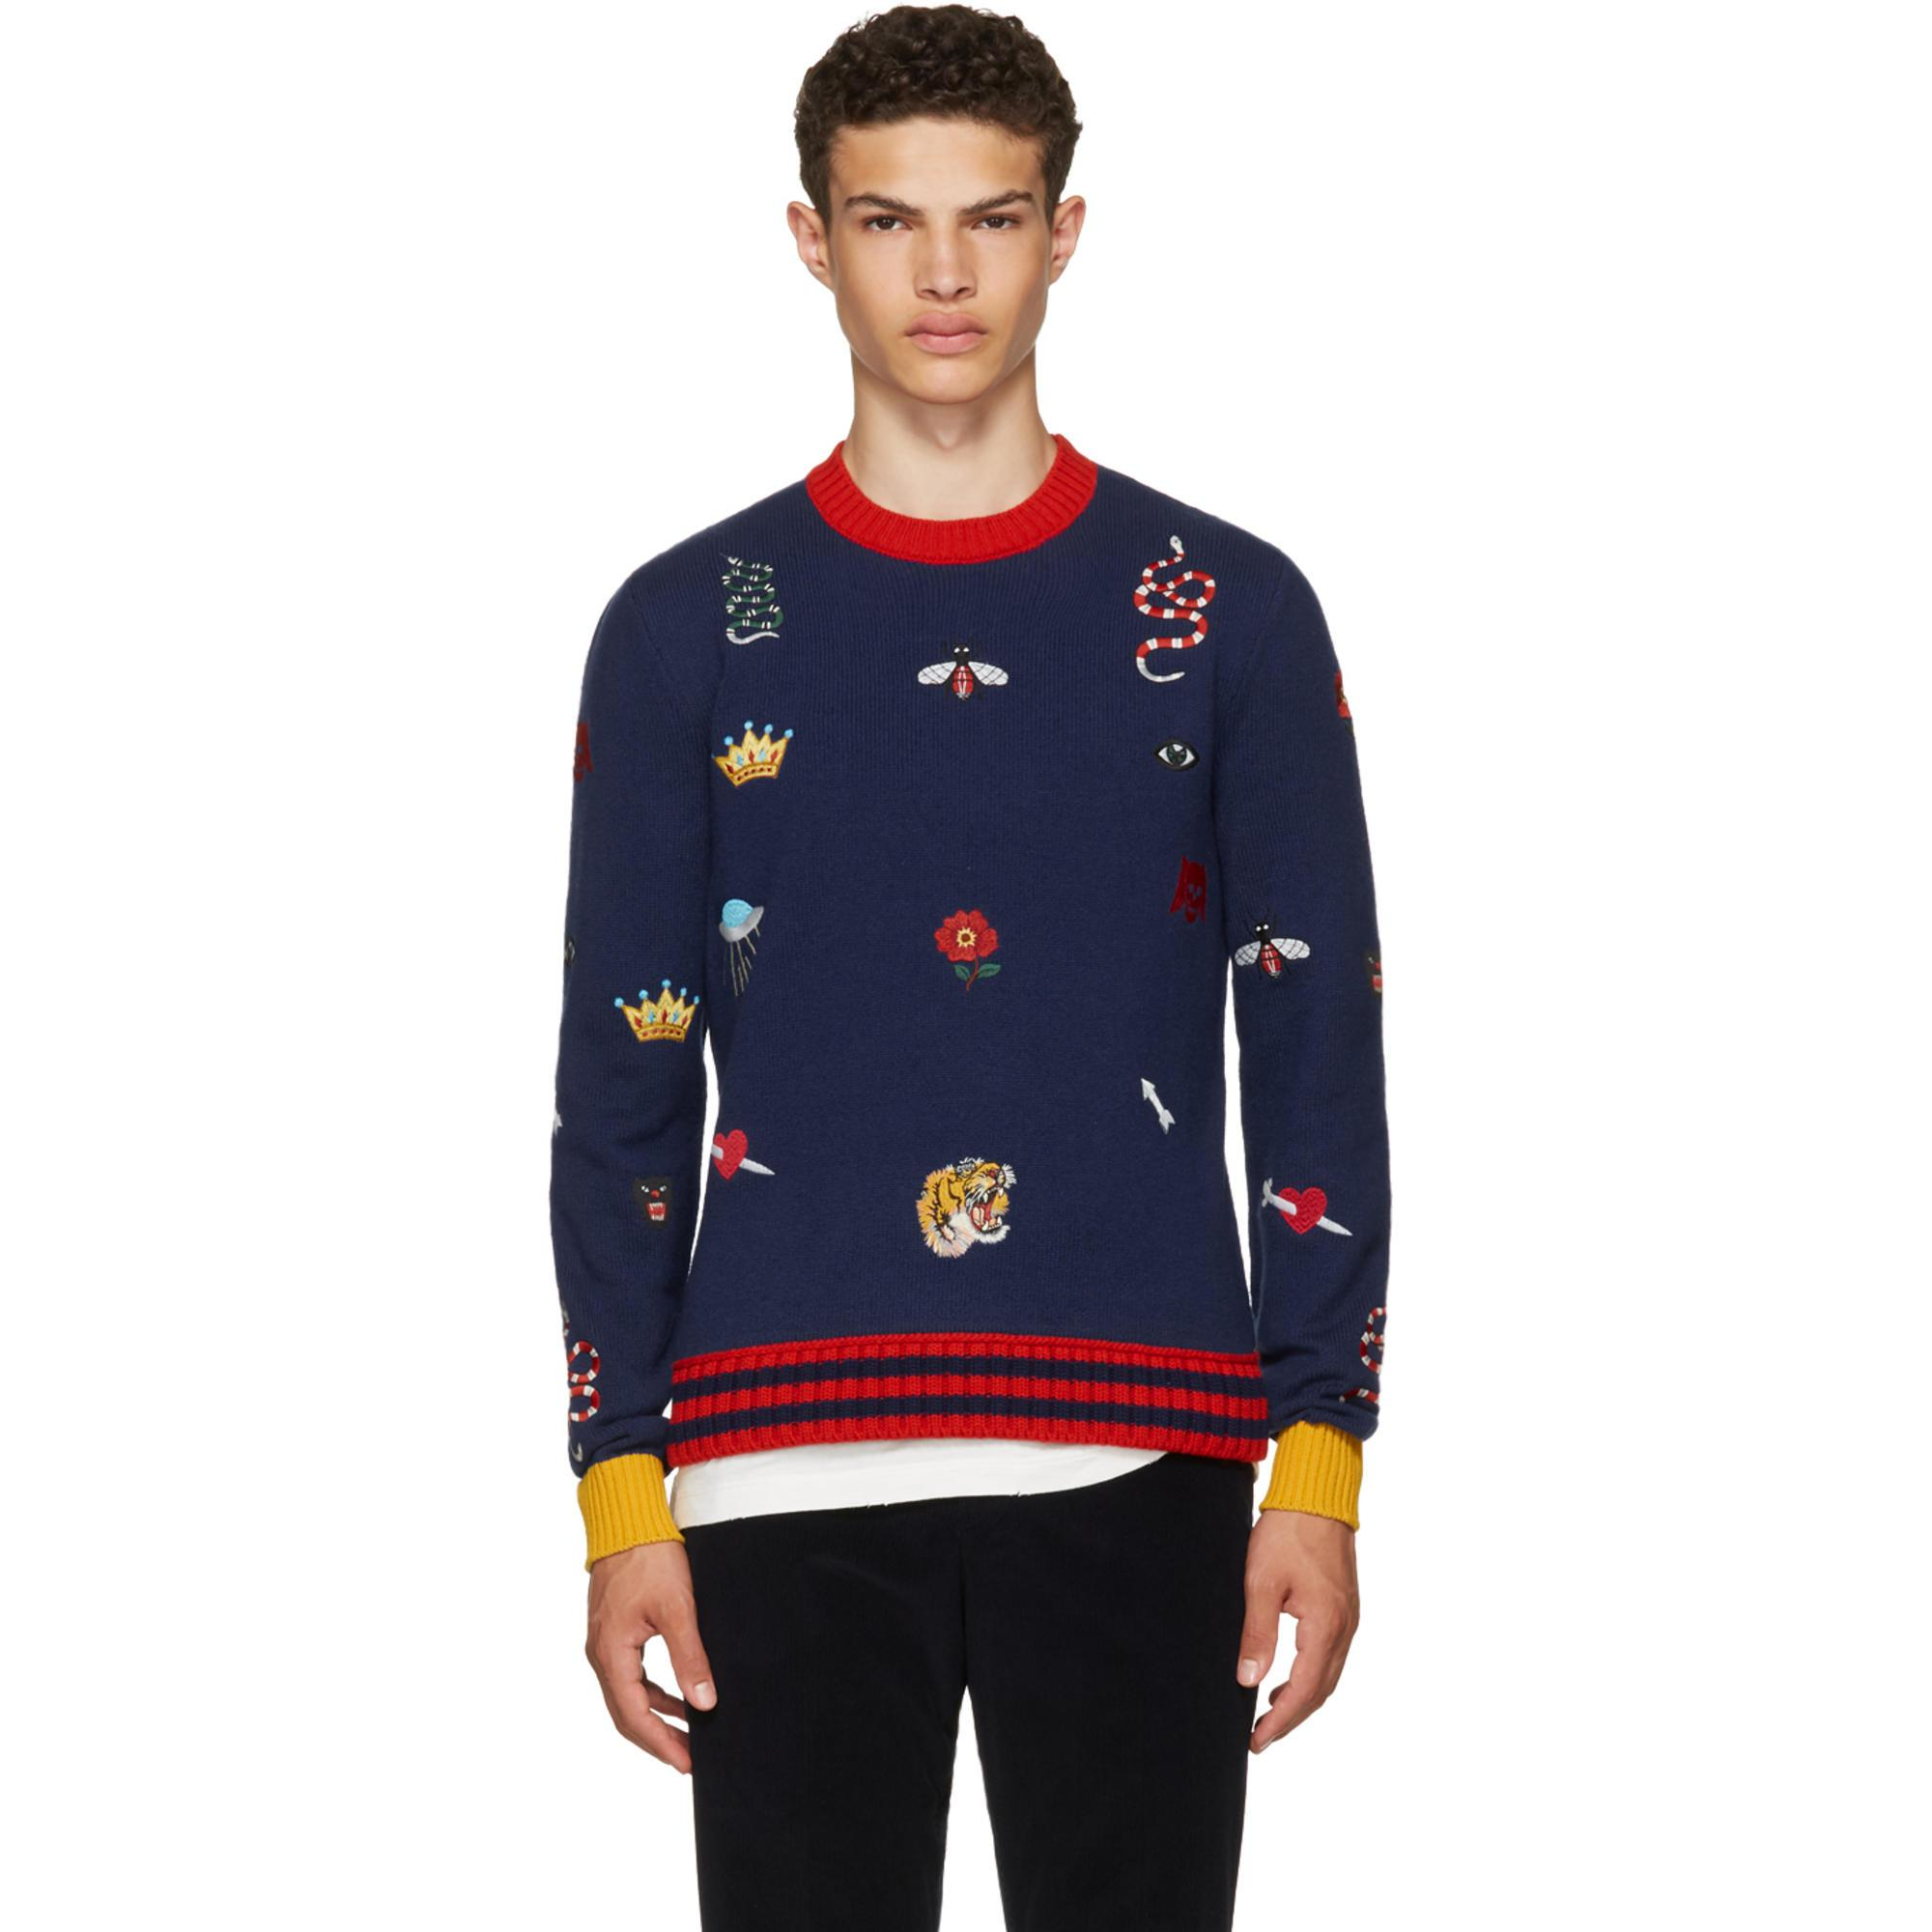 55ad7b2fc88 Gucci Navy Embroidered Sweater in Blue for Men - Lyst